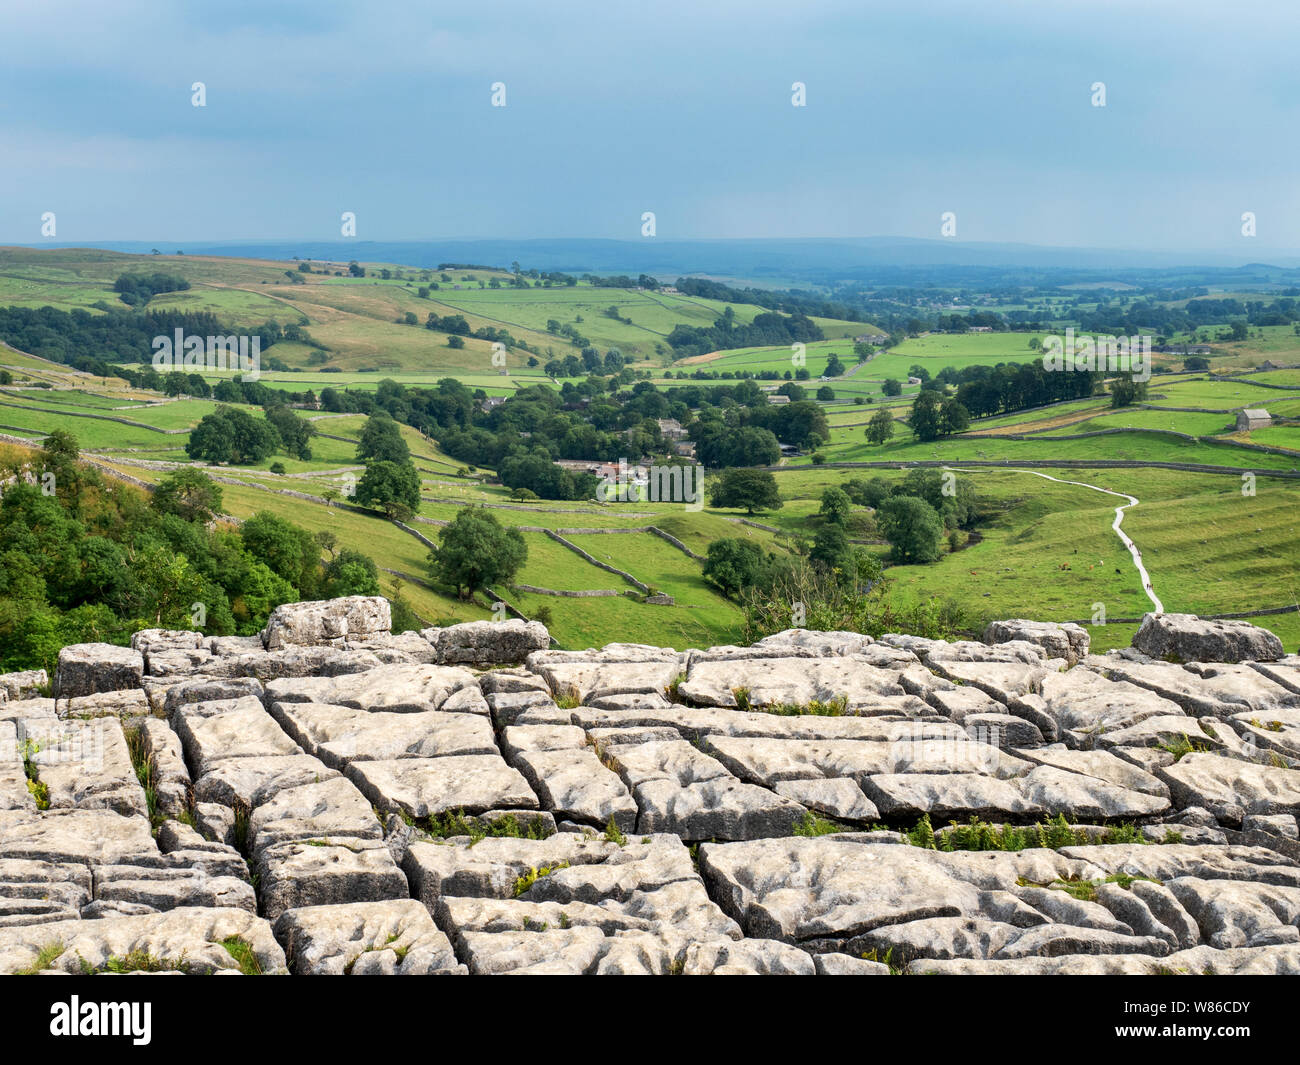 View over malhamdale from the limestone pavement above Malham Cove near Malham Yorkshire Dales National Park England Stock Photo